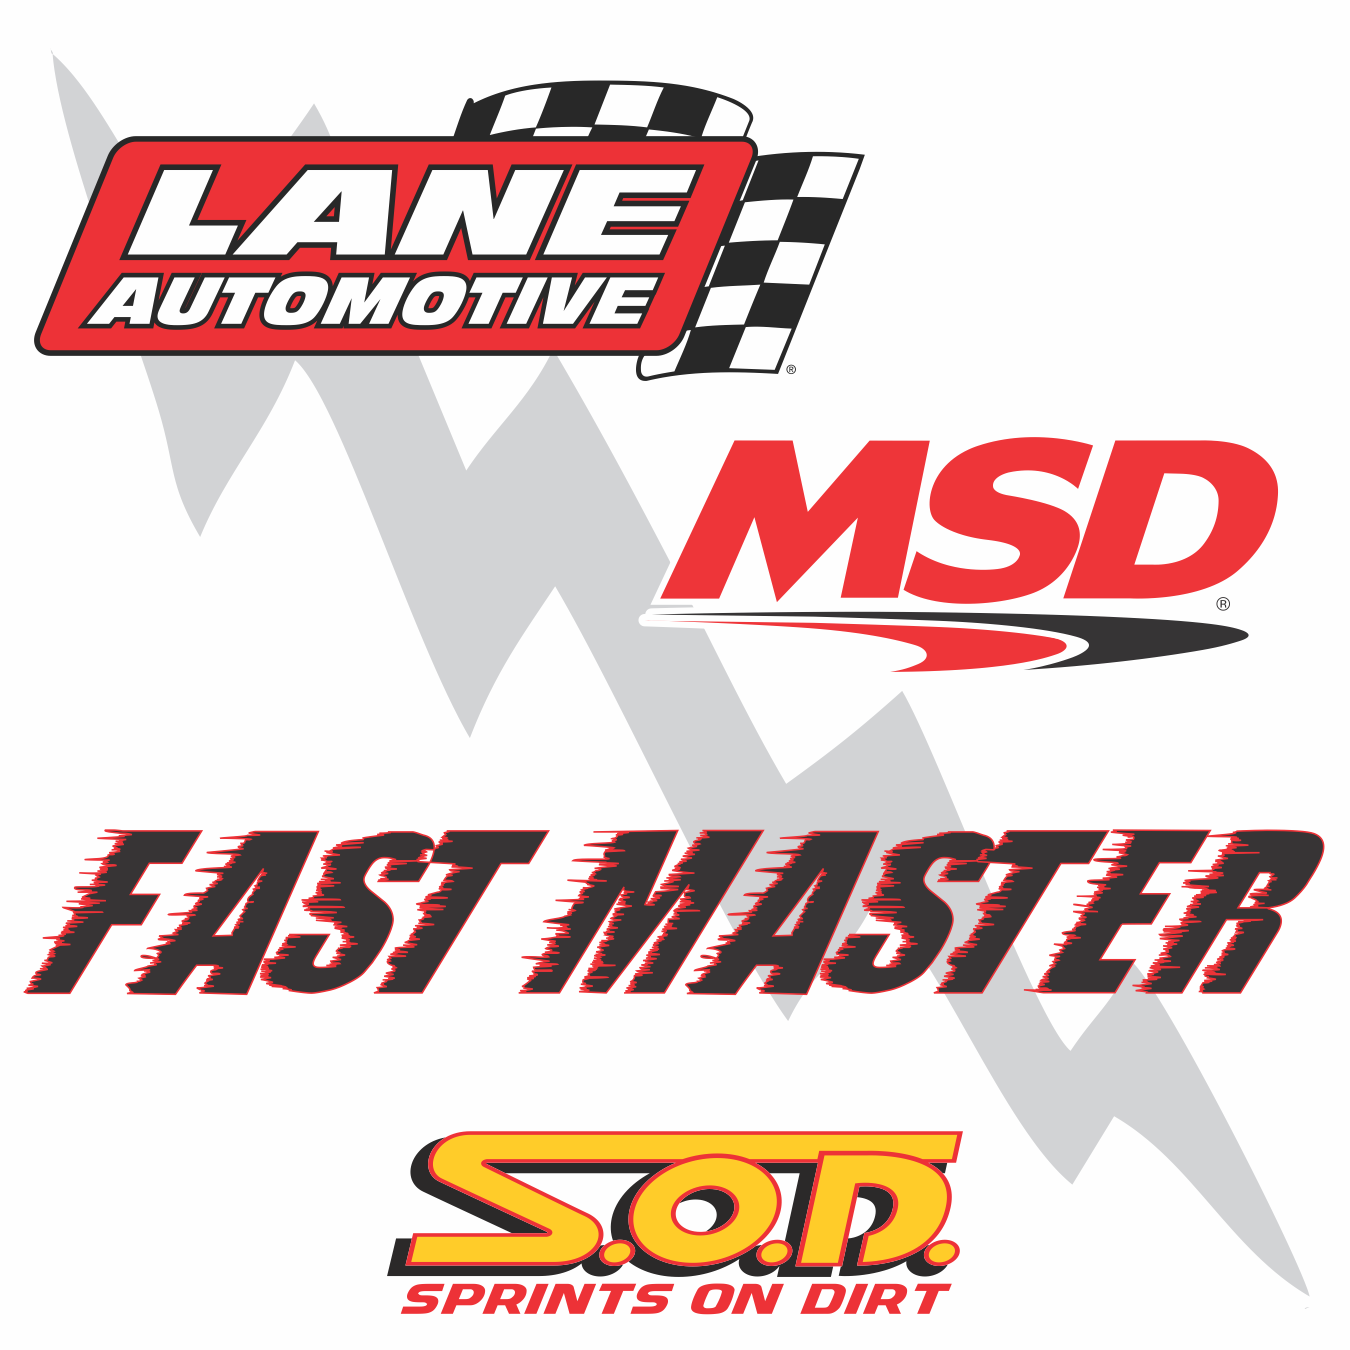 Lane Automotive & MSD Ignition SOD Fast Master Award Announced